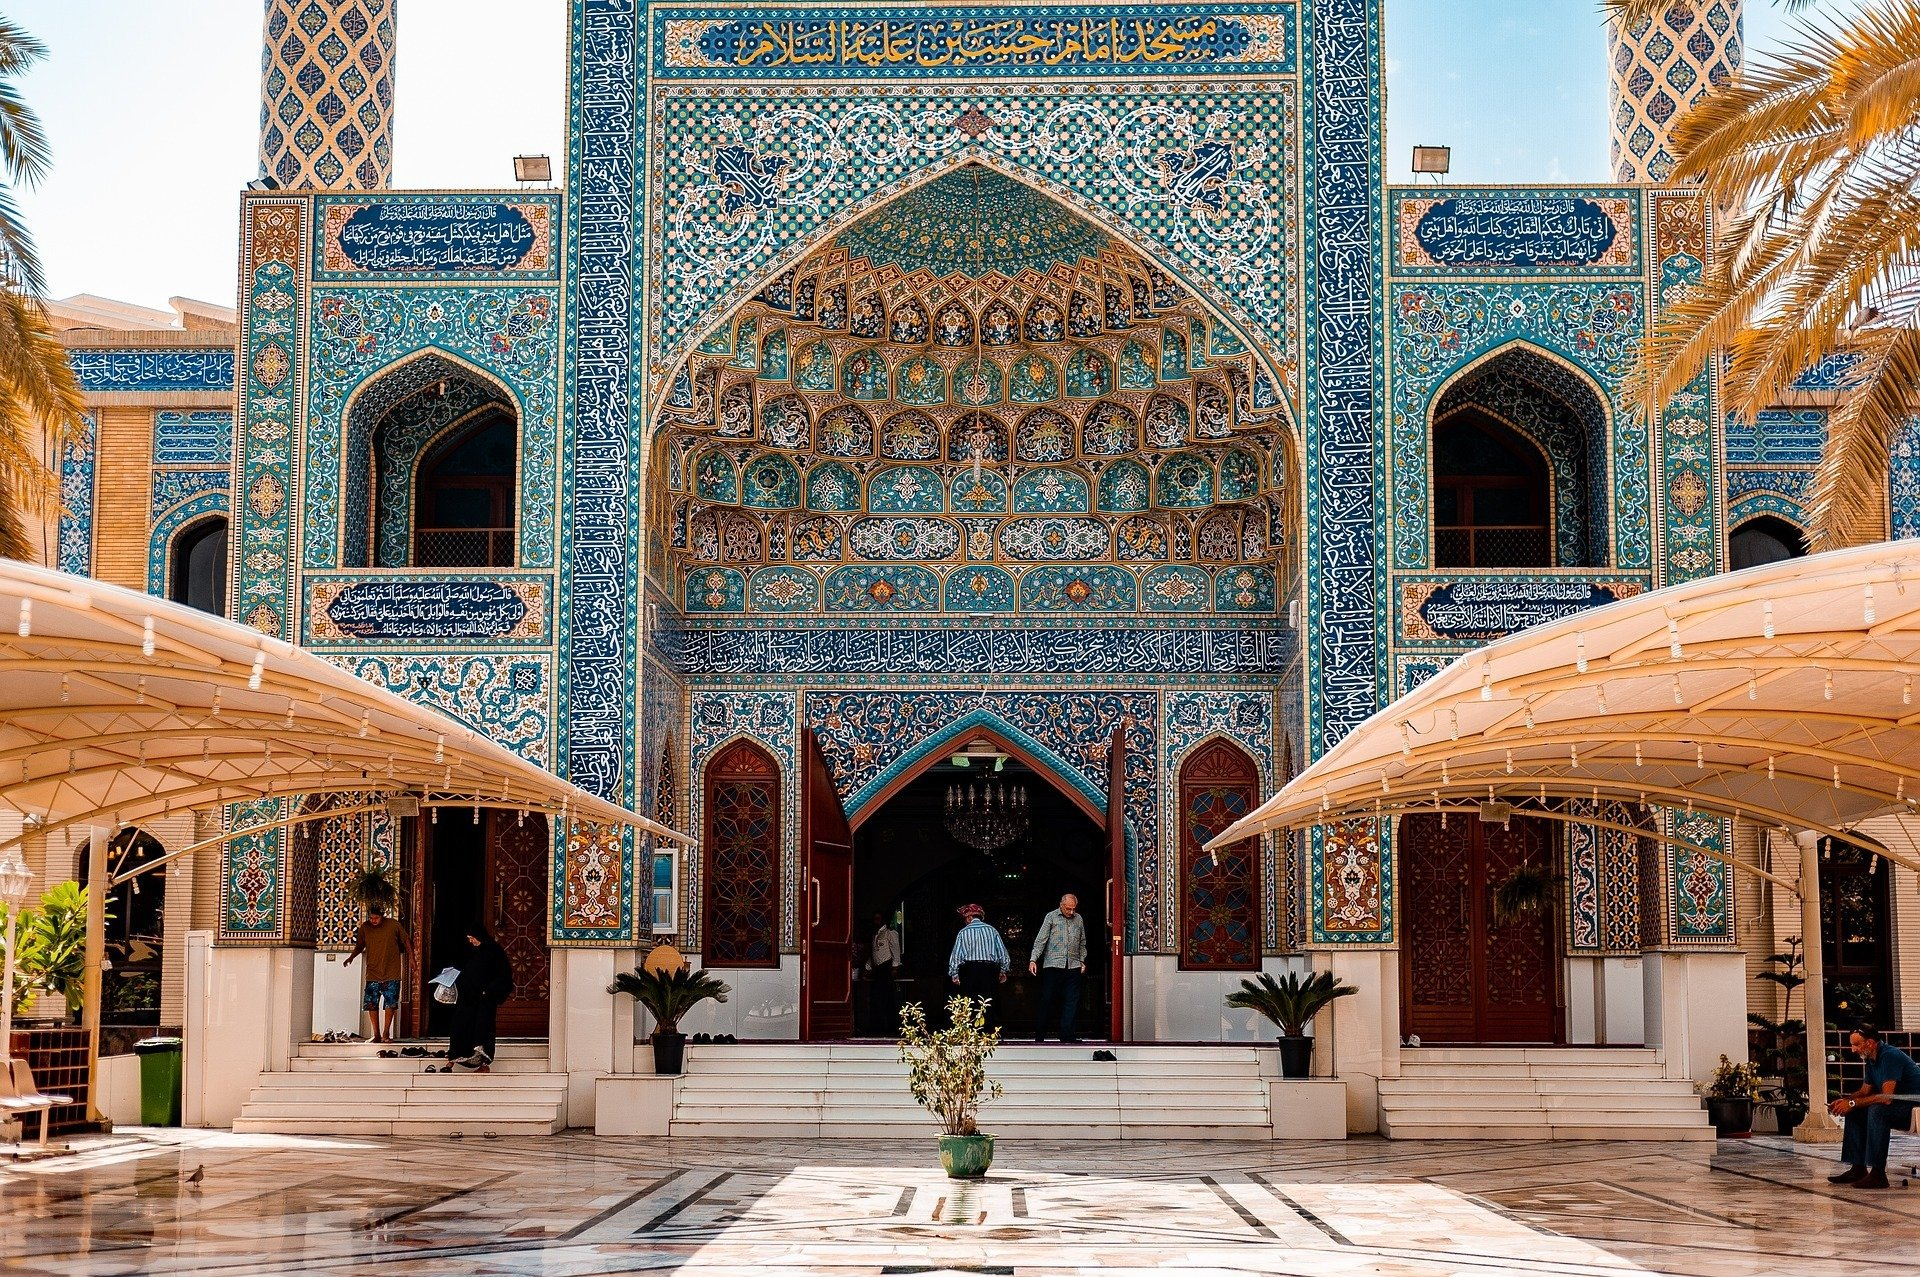 A peaceful Mosque and safe to visit in DUbai